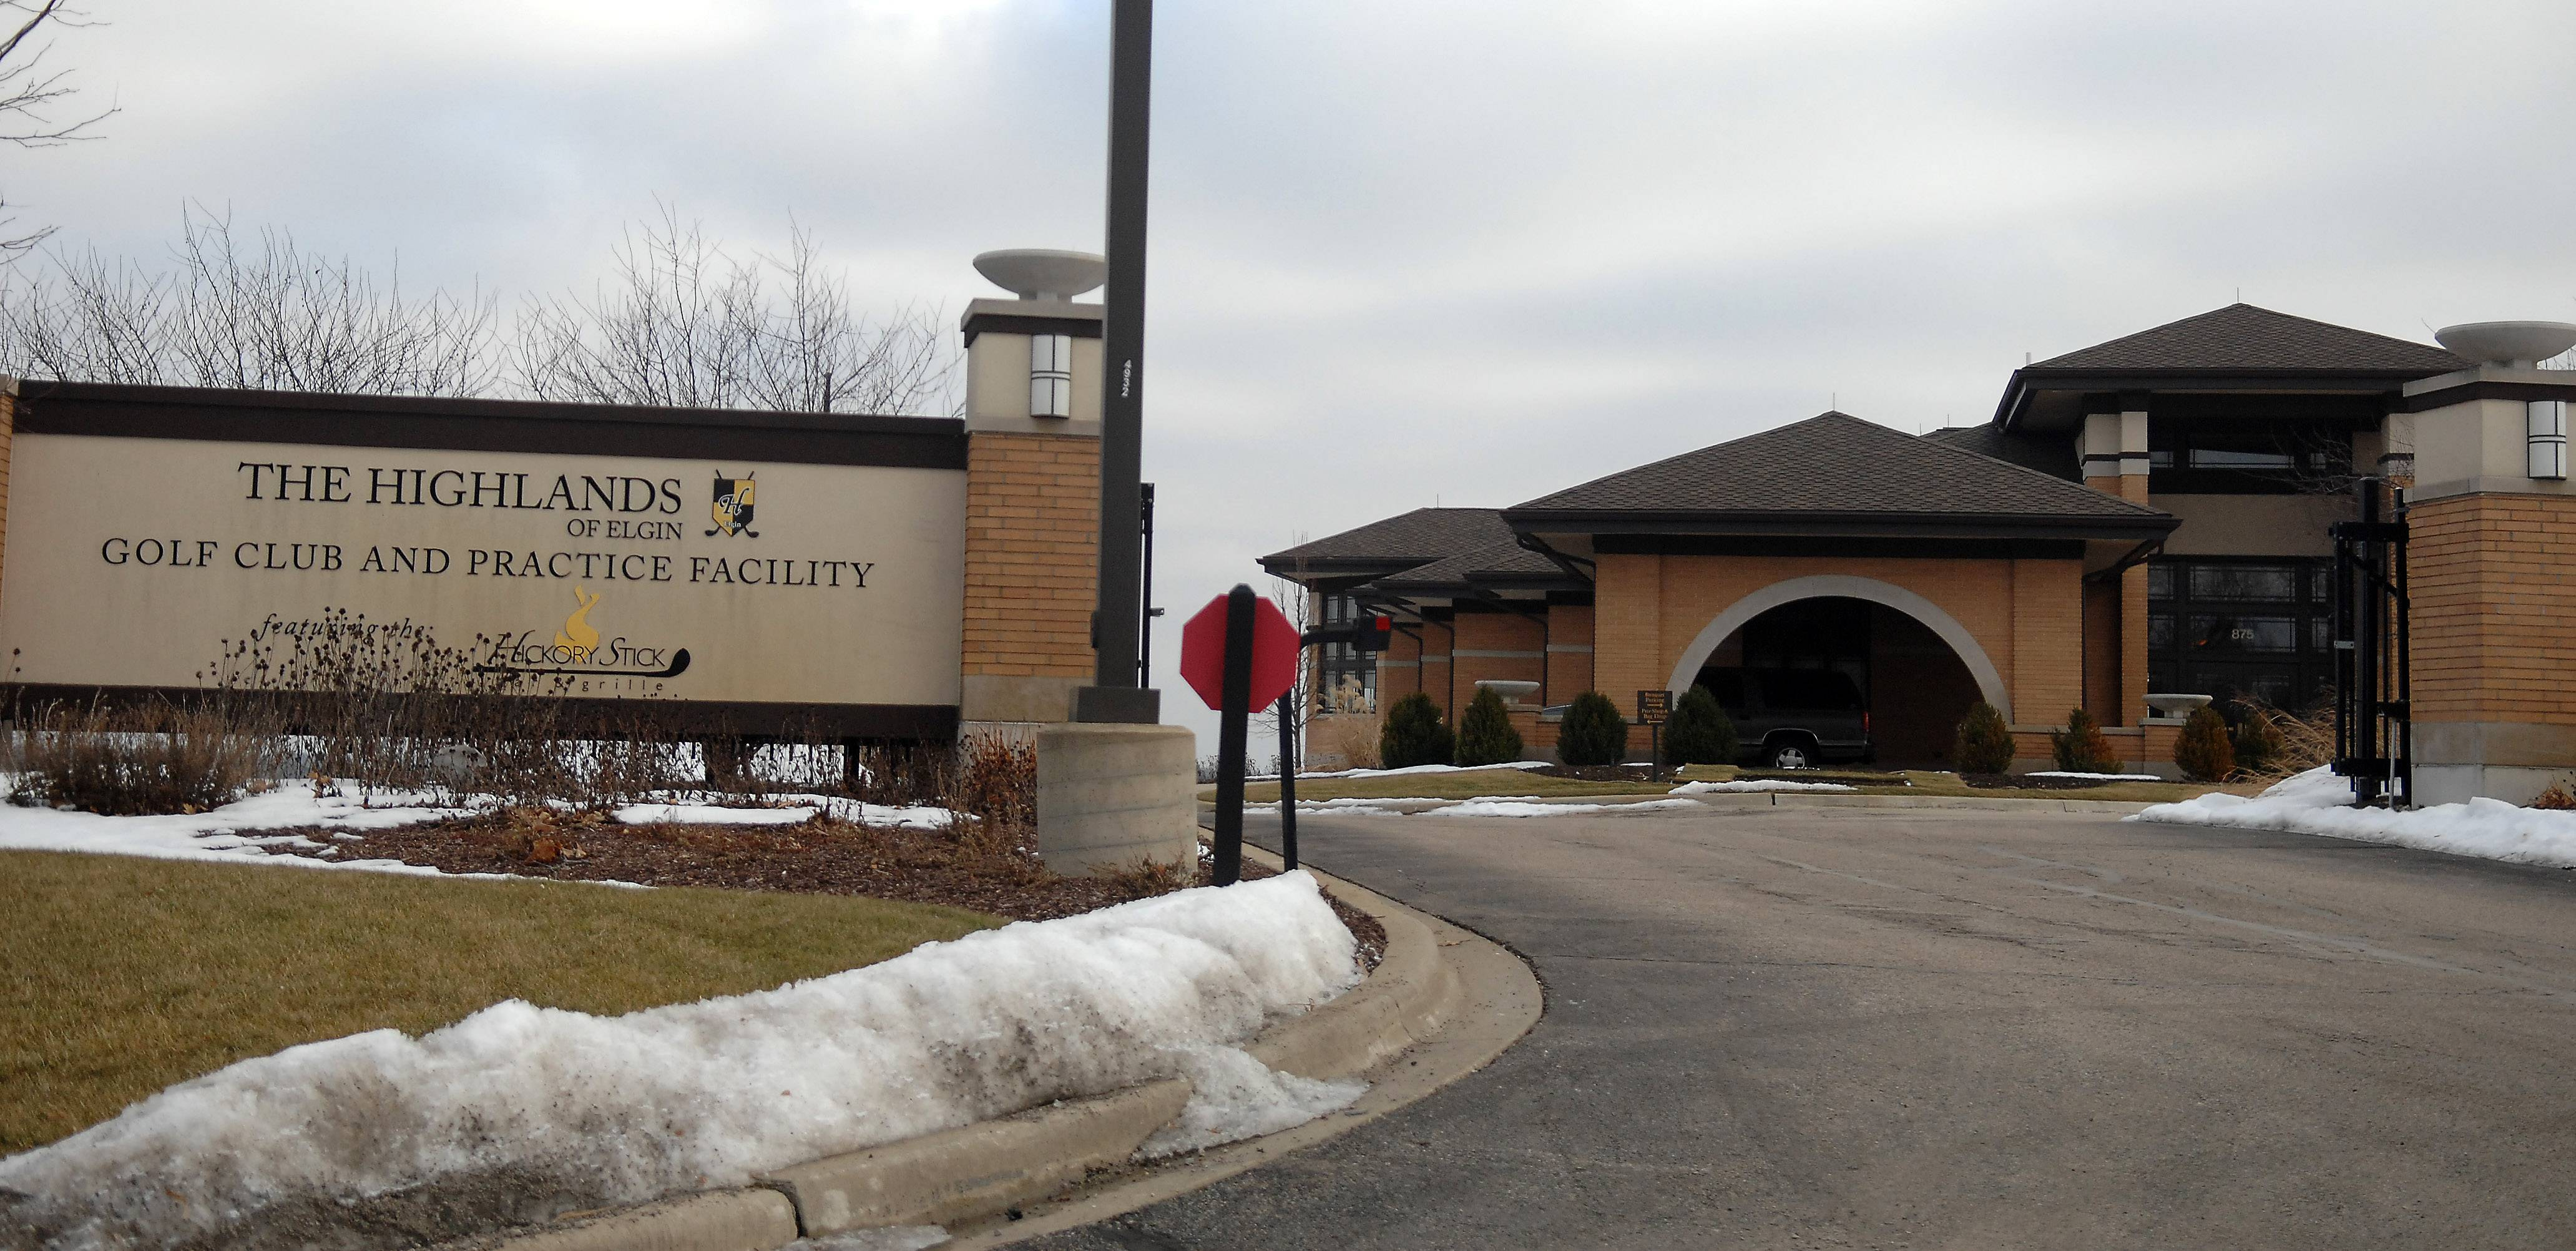 New eatery proposed for Elgin golf course